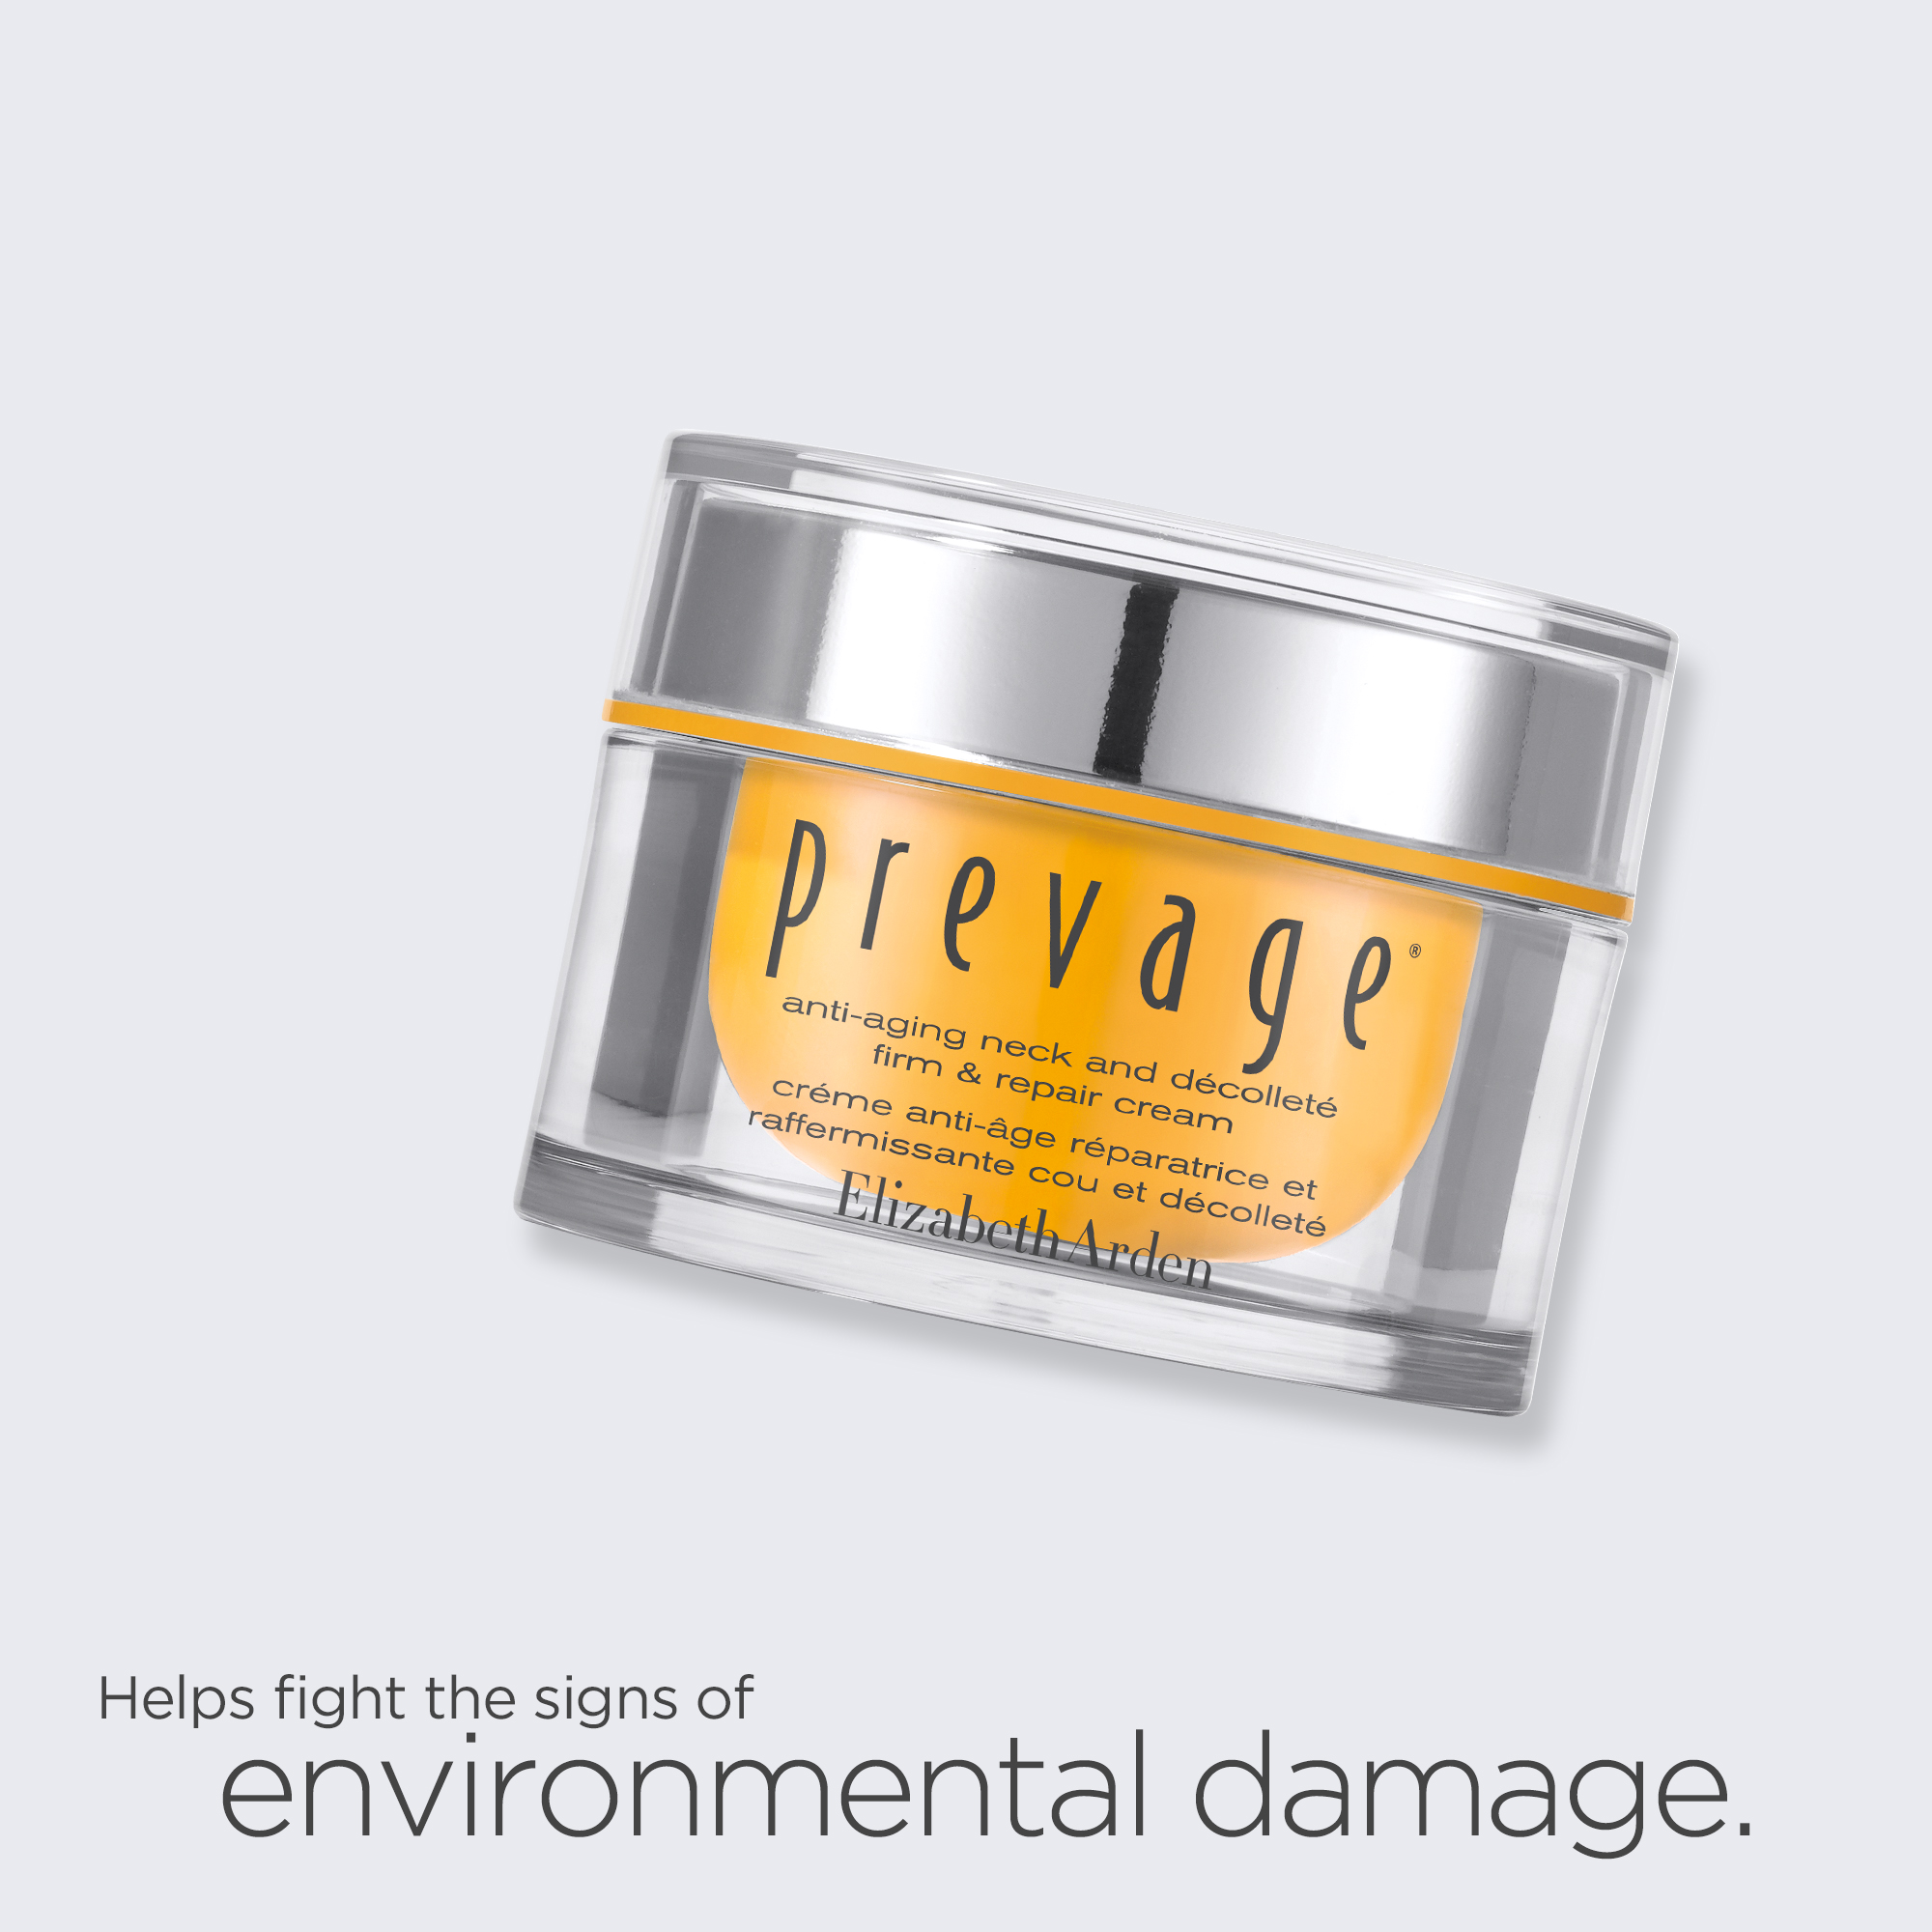 Helps fight signs of environmental damage.